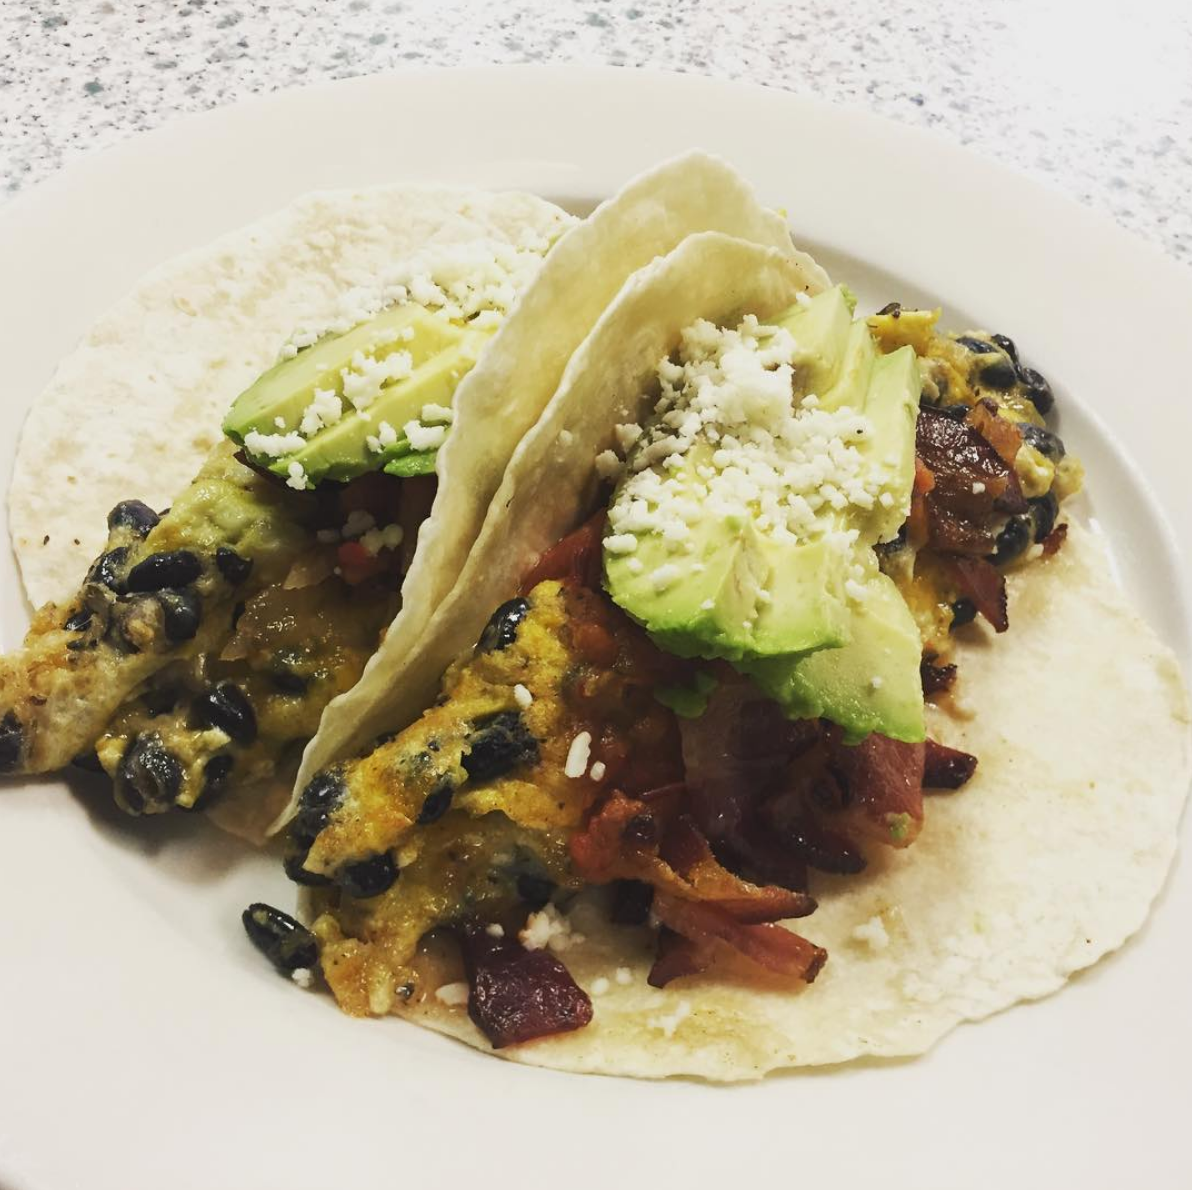 Breakfast Tacos - Corn tortillas filled with scrambled eggs, bacon, black beans, avocado, and cotija cheese